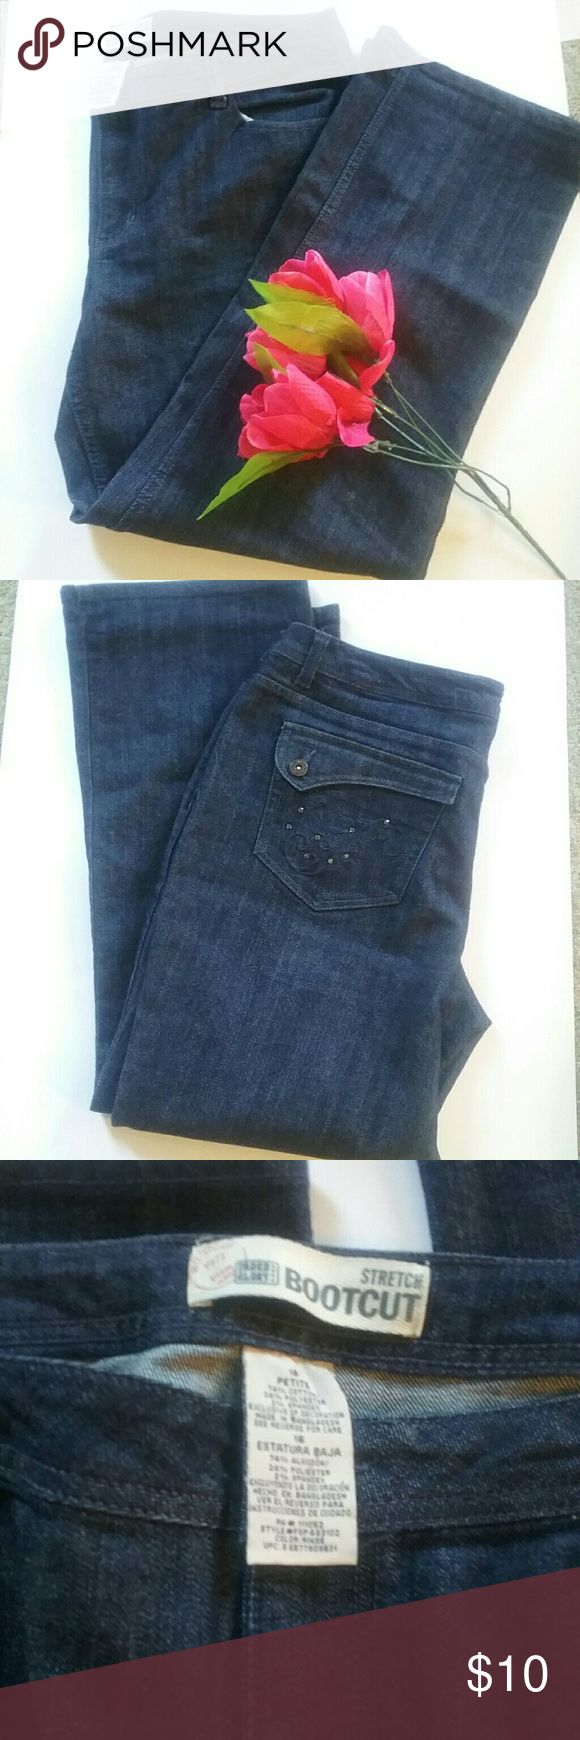 Faded Glory 18 Petite Jeans Med Wash This is a pair of Faded Glory size 18 petite jeans. They are medium wash. They have a little bit of bling on the pockets, and button back pockets. They are medium wash and are in like new condition. Faded Glory Jeans Boot Cut